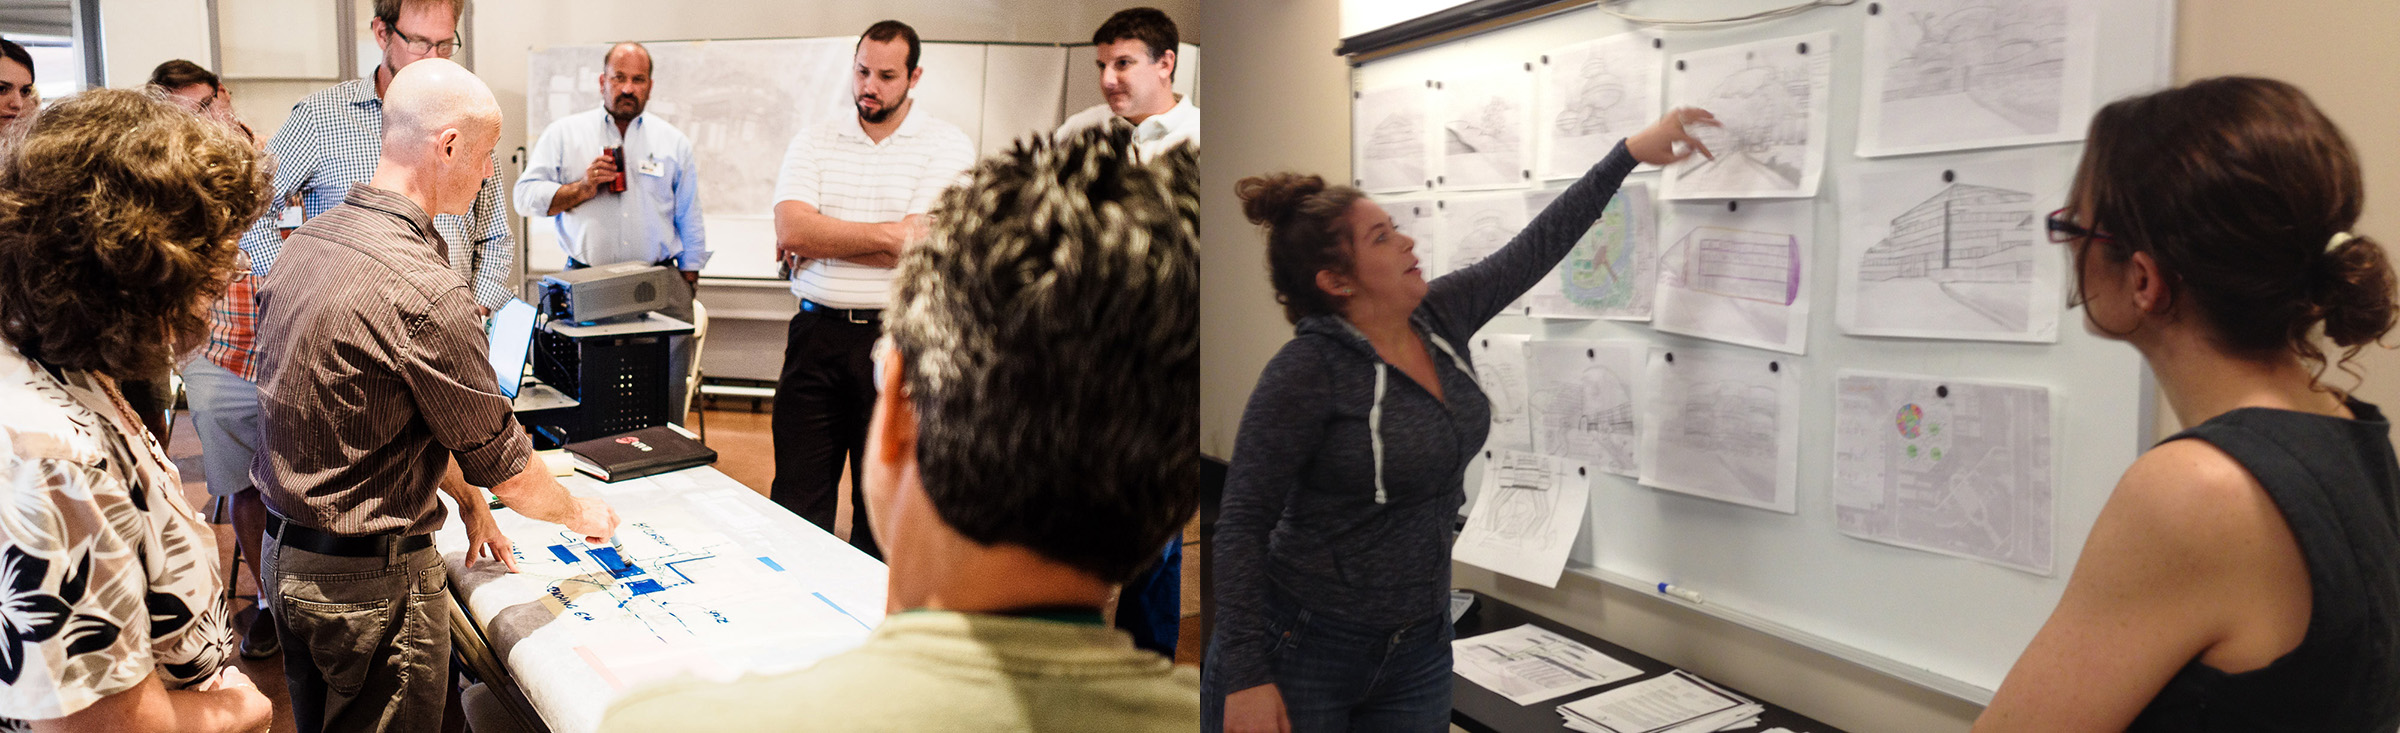 We believe the best work grows out of intense collaboration.